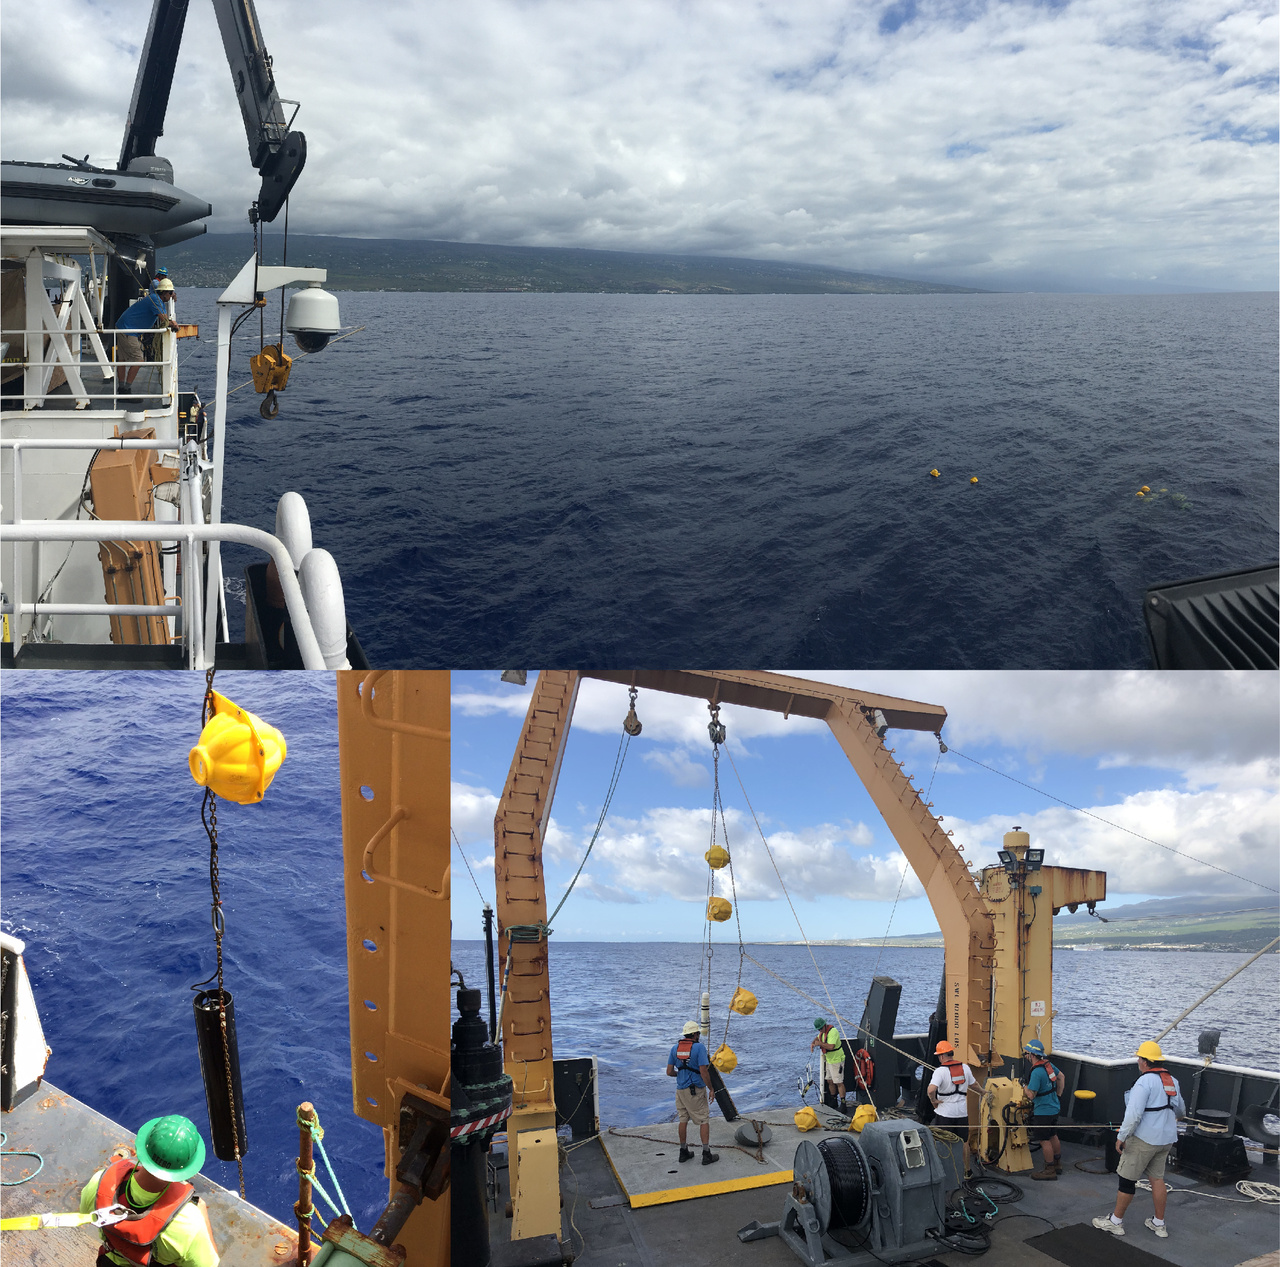 """We maintain a long-term dataset of acoustic recordings collected from high-frequency acoustic recording packages (HARPs) from 13 different sites around the world. One site includes a HARP located offshore from Kona, Big Island. Today, the acoustics team led the effort to (top, left image) recover the """"old"""" HARP with data then (right image) redeploy a """"new"""" HARP with an empty hard drive to record new acoustic data. Photo: NOAA Fisheries/Marie Hill and Suzanne Yin."""